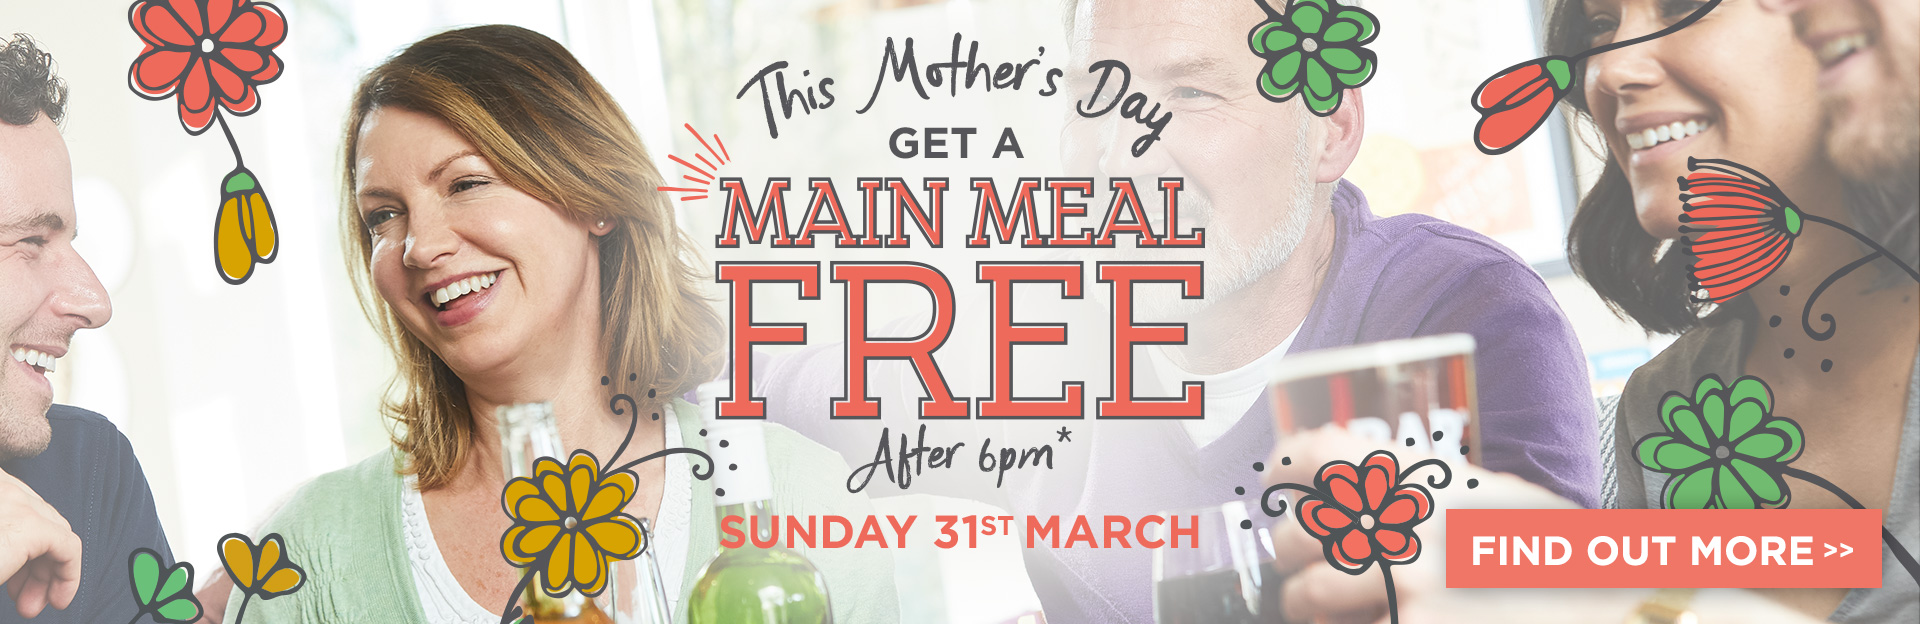 Mother's Day at The Britannia Inn